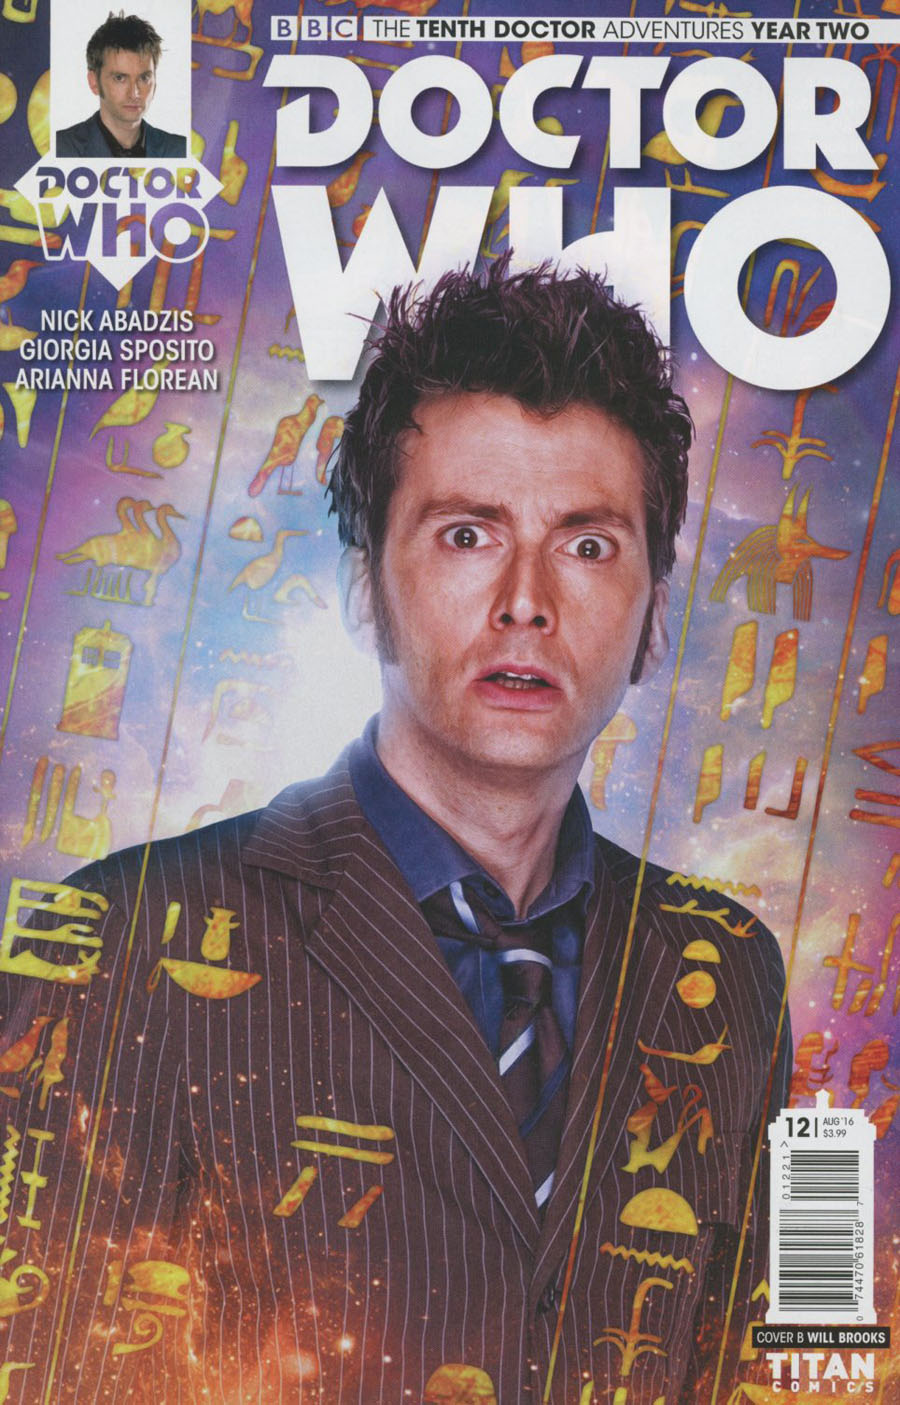 Doctor Who 10th Doctor Year Two #12 Cover B Variant Photo Cover